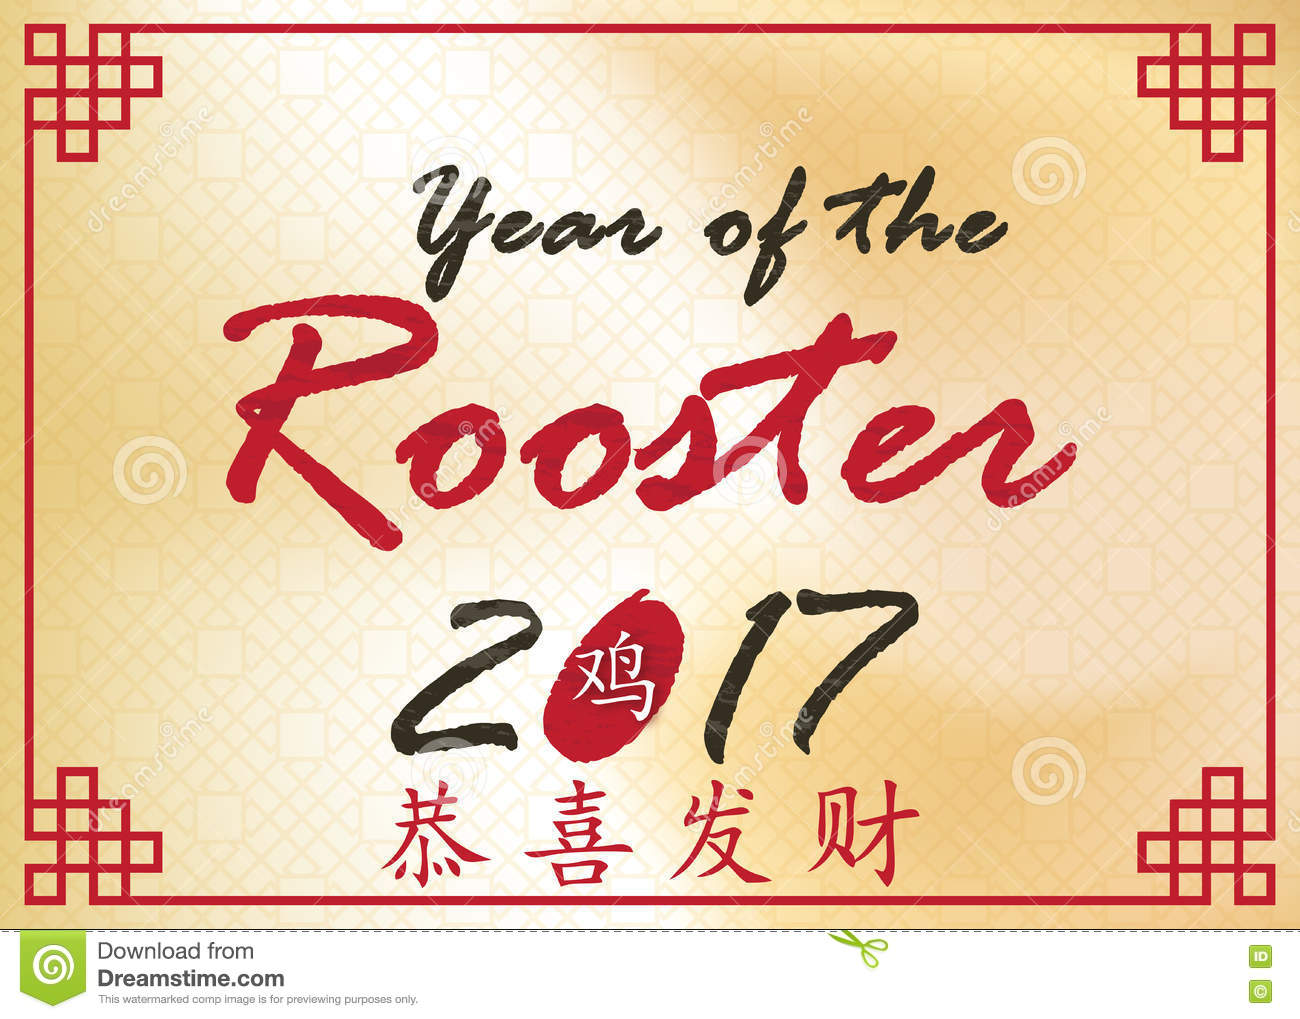 year of the rooster 2017 greeting card printable chinese new year greeting card chinese characters meaning rooster animal happy new year